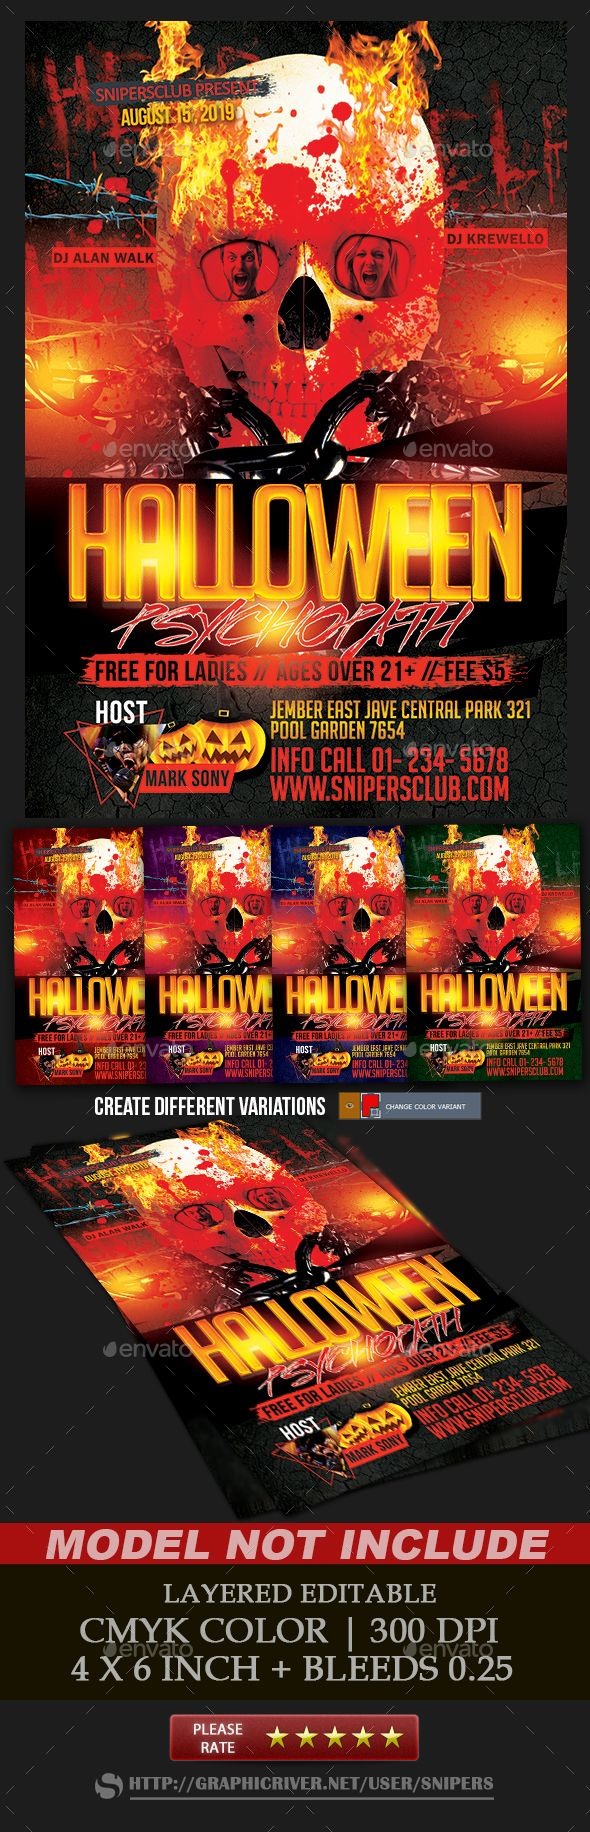 Halloween Psychopath Party  — PSD Template #holiday #dj • Download ➝…